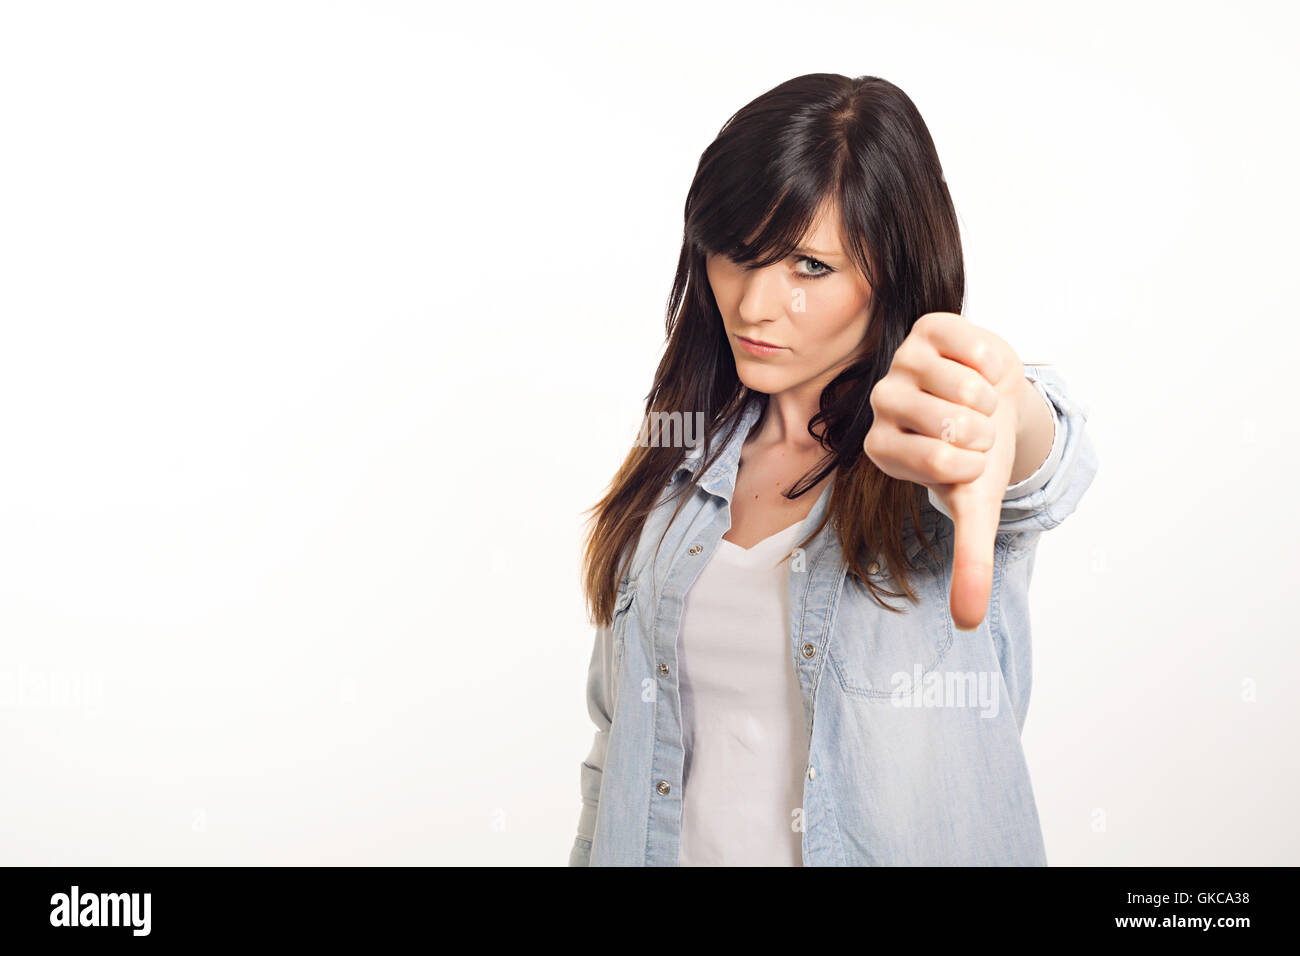 portrait of a beautiful young woman thumbs down - Stock Image